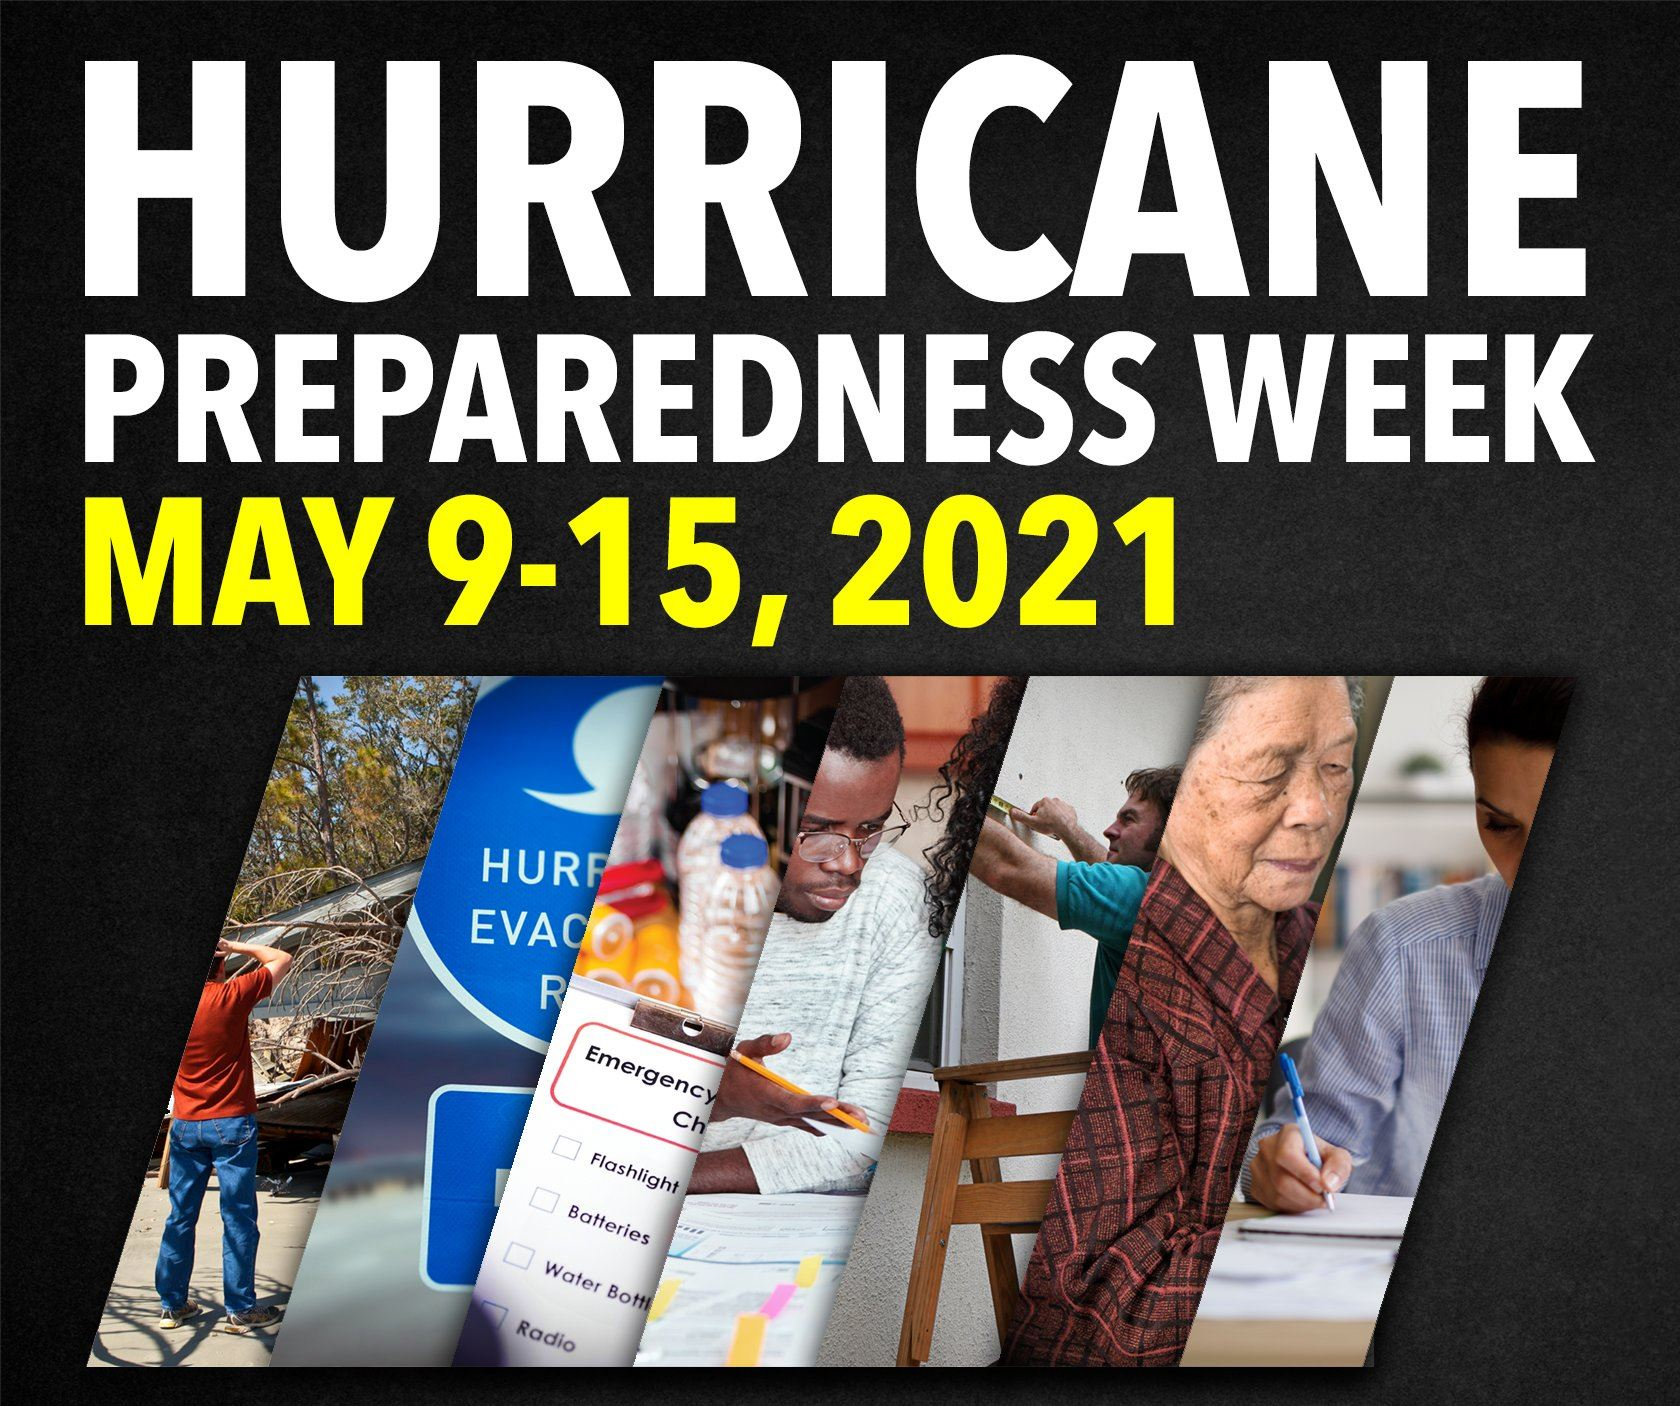 Graphic - Hurricane Preparedness Week May 9 through 15, 2021 - Photos of people preparing for storm.